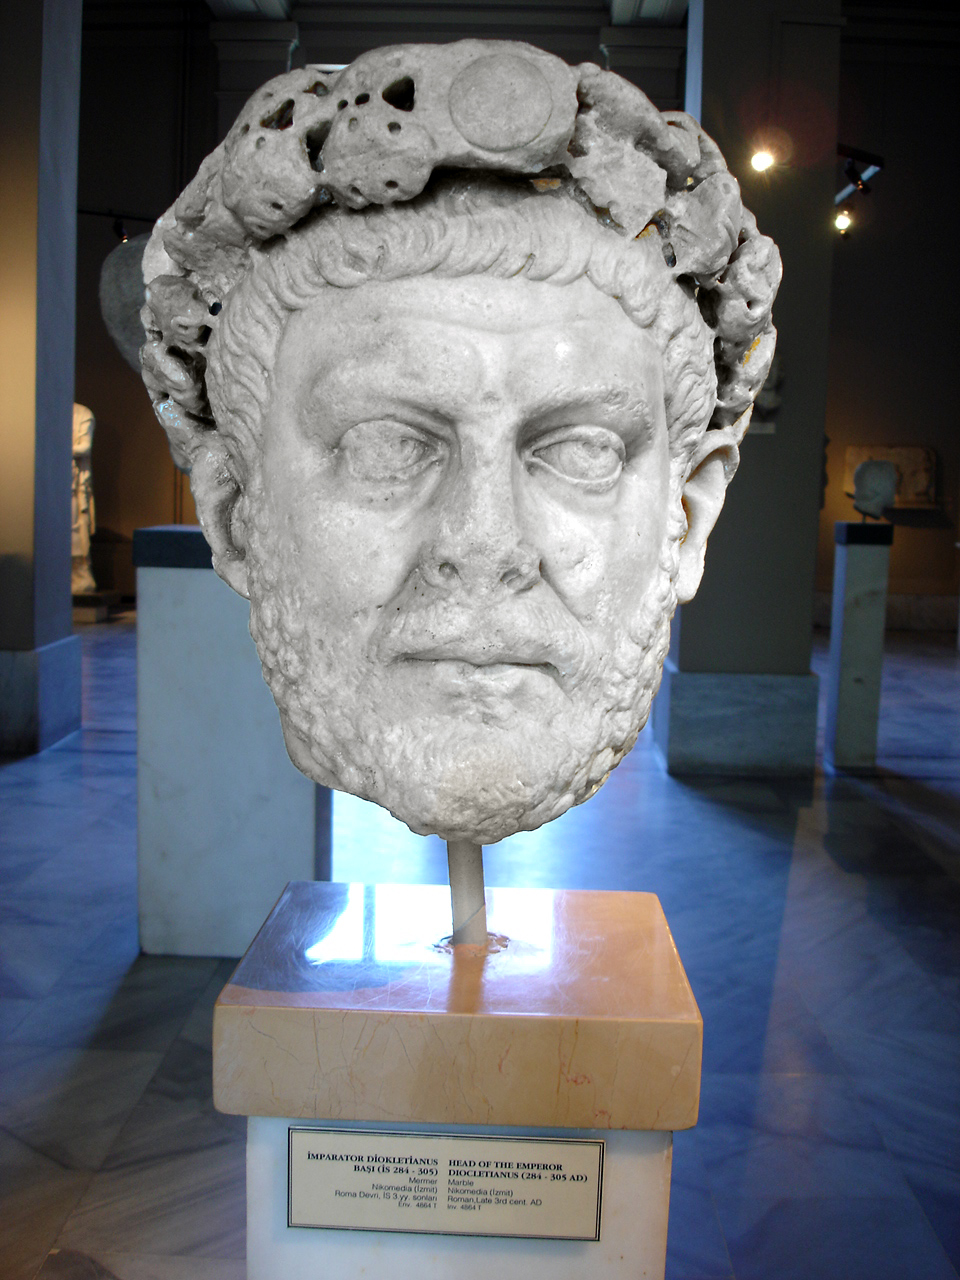 A bust of Emperor Diocletian.